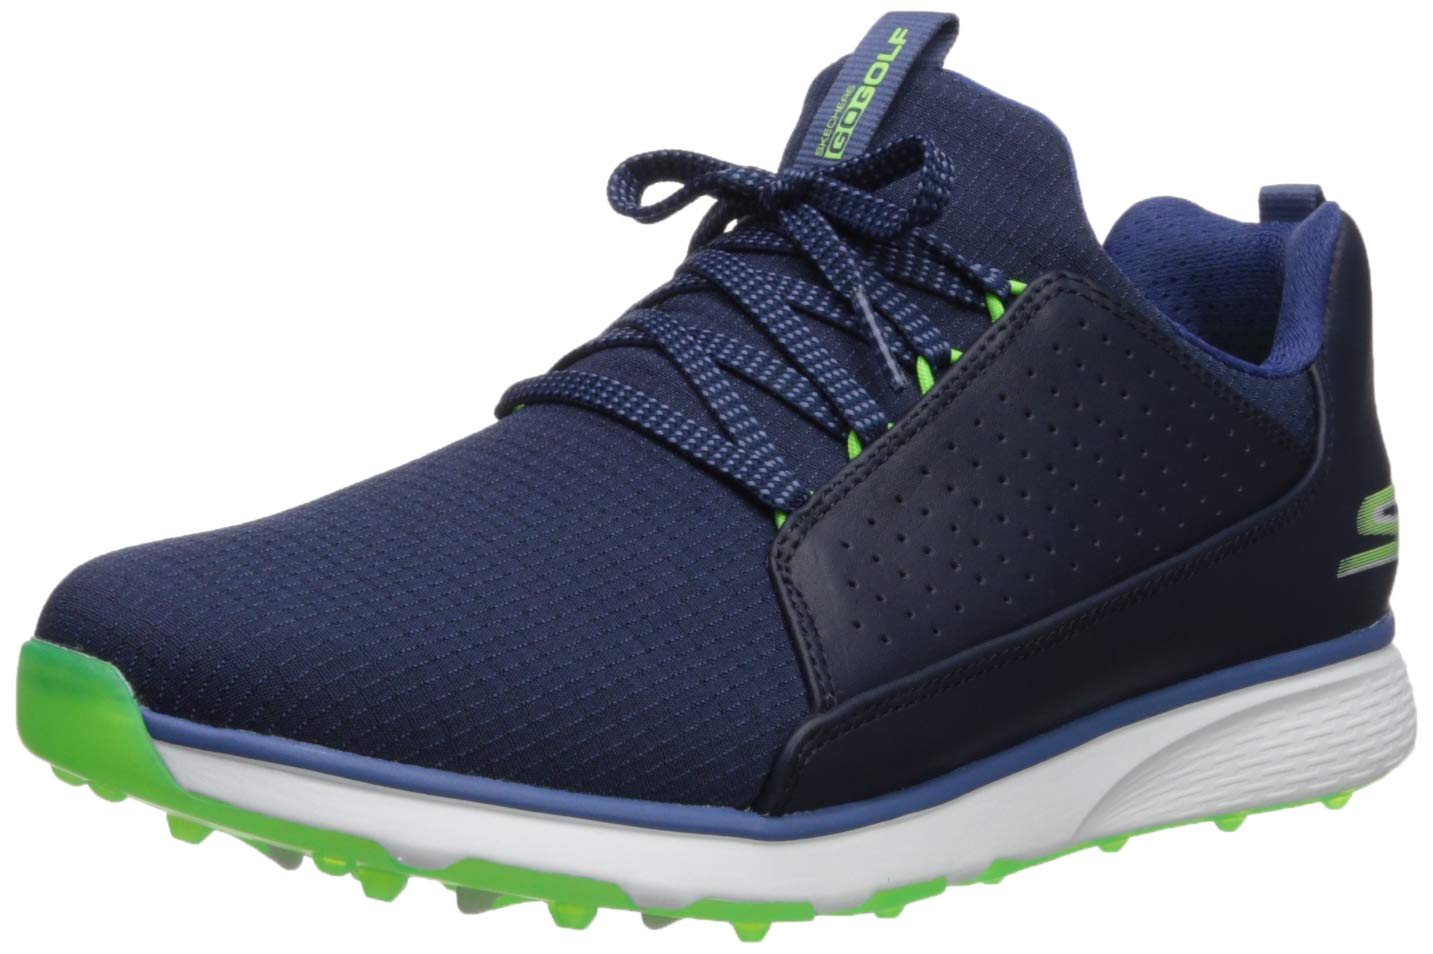 Skechers Men's Mojo Waterproof Golf Shoe, Navy/Lime Textile, 11 M US by Skechers